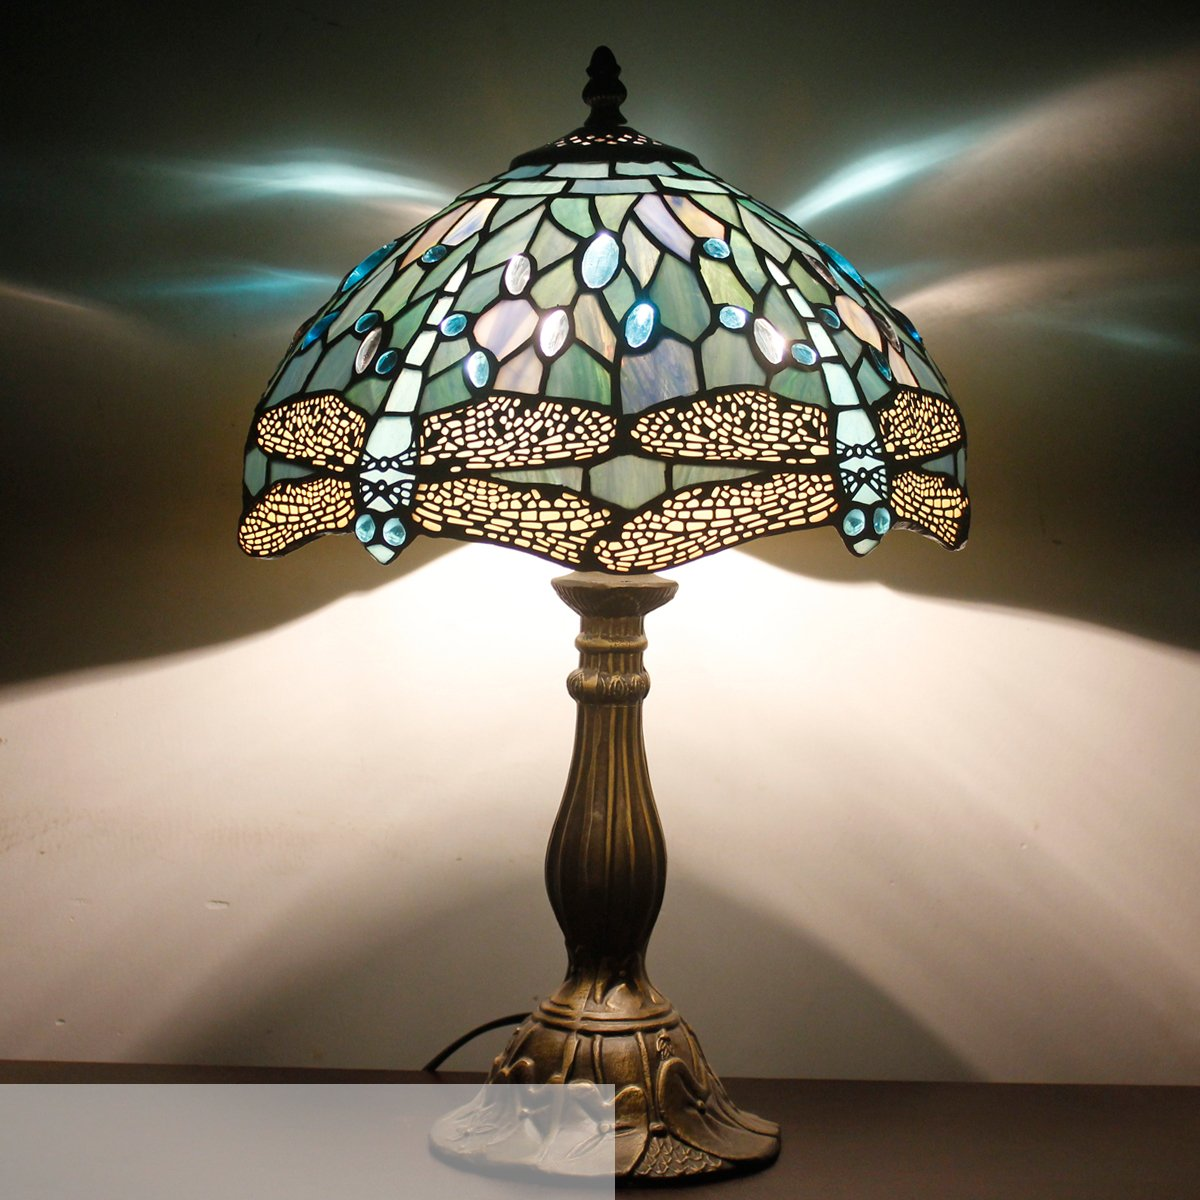 Tiffany Lamp With Sea Blue Stained Glass and Crystal Bead Dragonfly Table Lamp In Height 18 Inch For Living Room by WERFACTORY (Image #2)